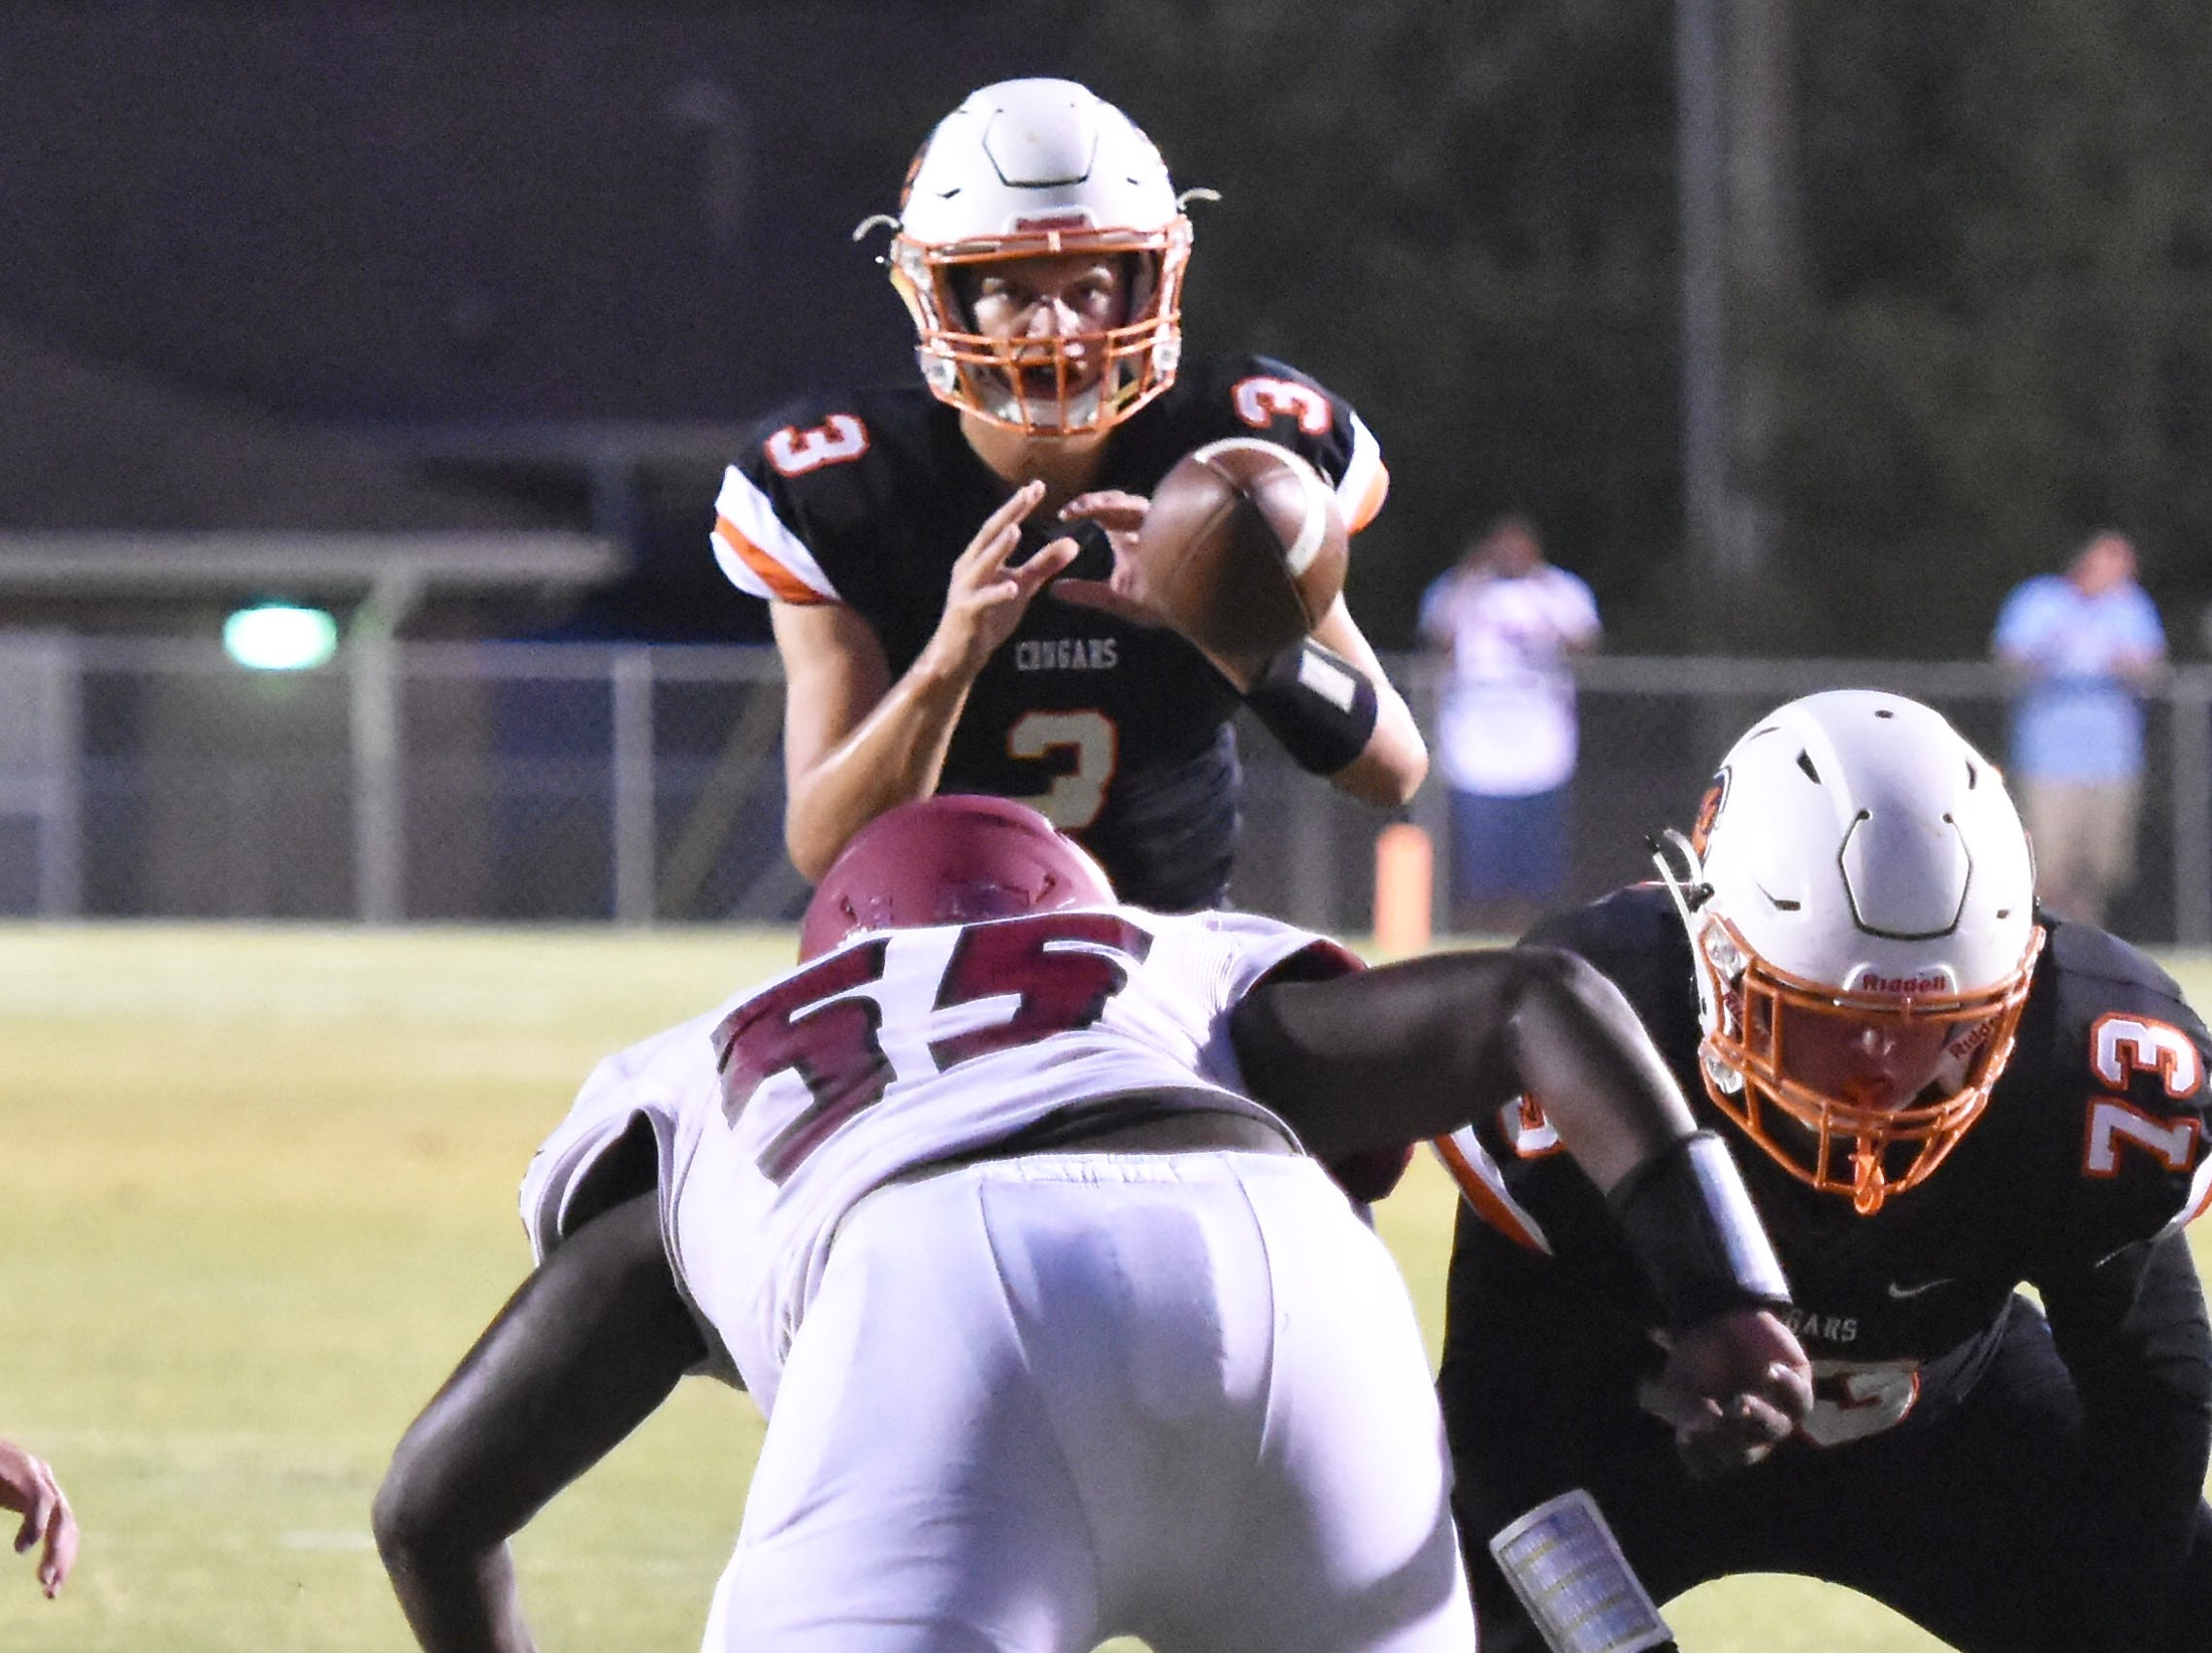 MTCS QB Jackson Green takes a snap from center against Ezell-Harding Friday night.